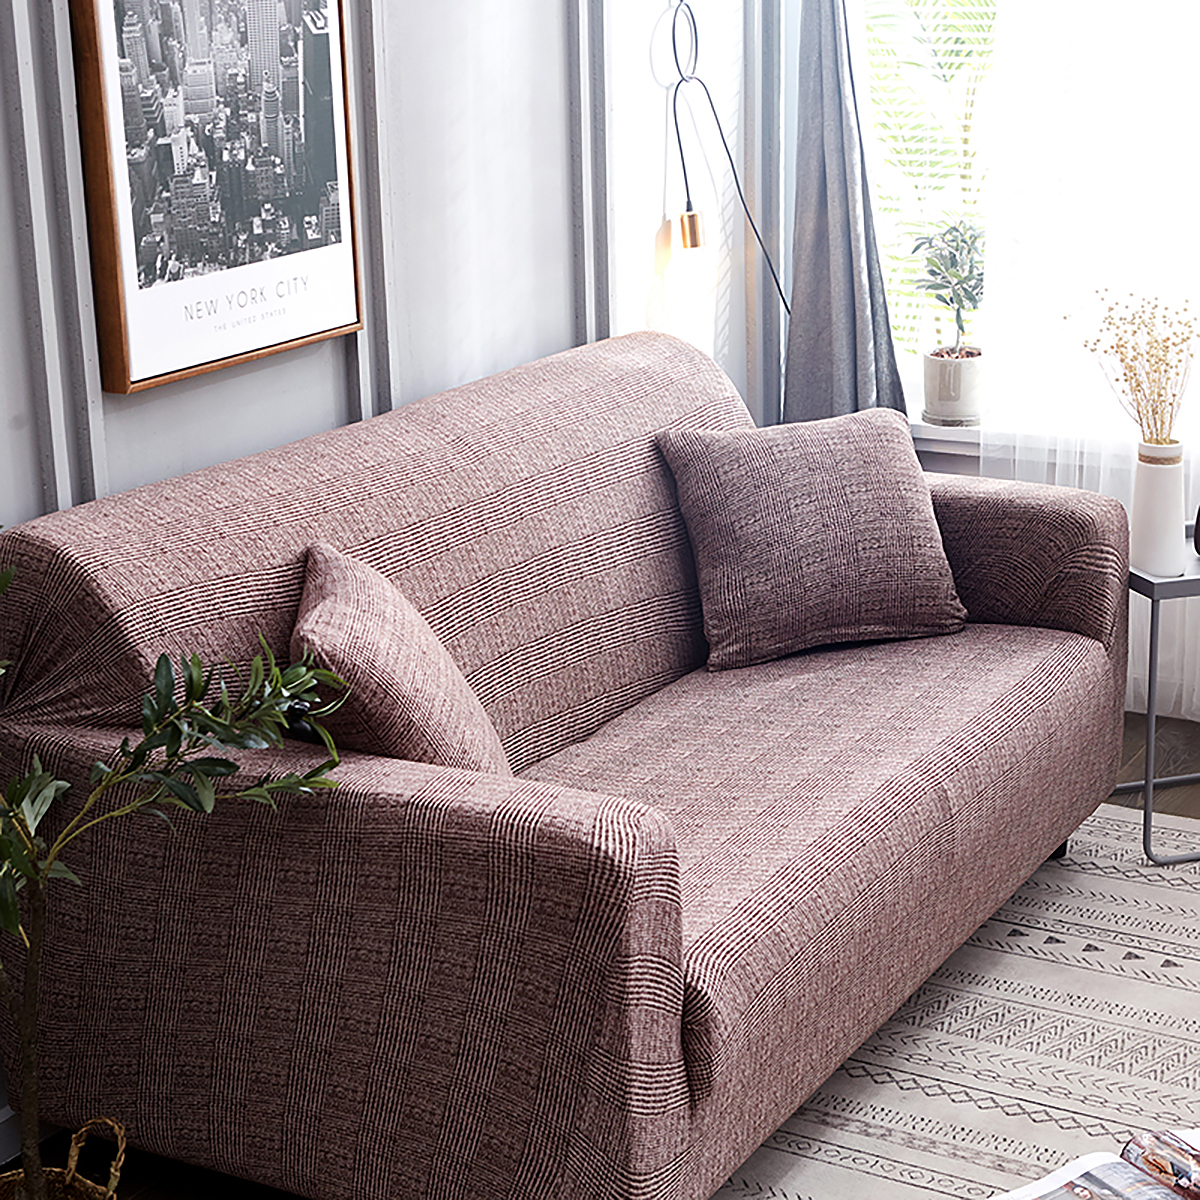 Sofa Covers Multicolored Elastic Stretch Slipcover Protector Settee 1-4 Seaters